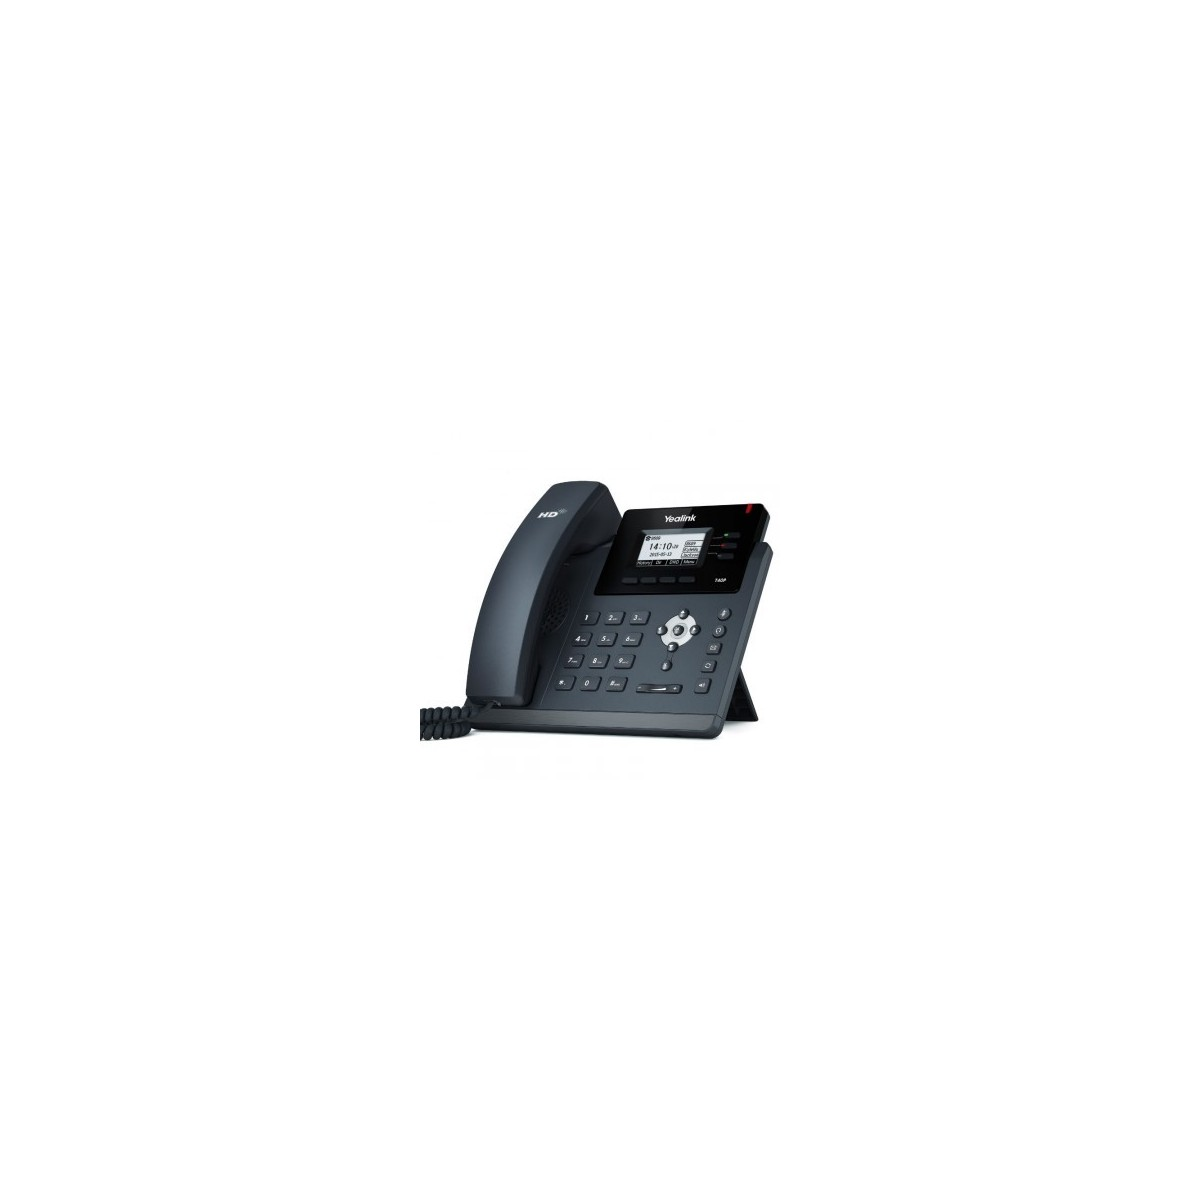 Yealink T40P Entry-level IP Phone 3 line